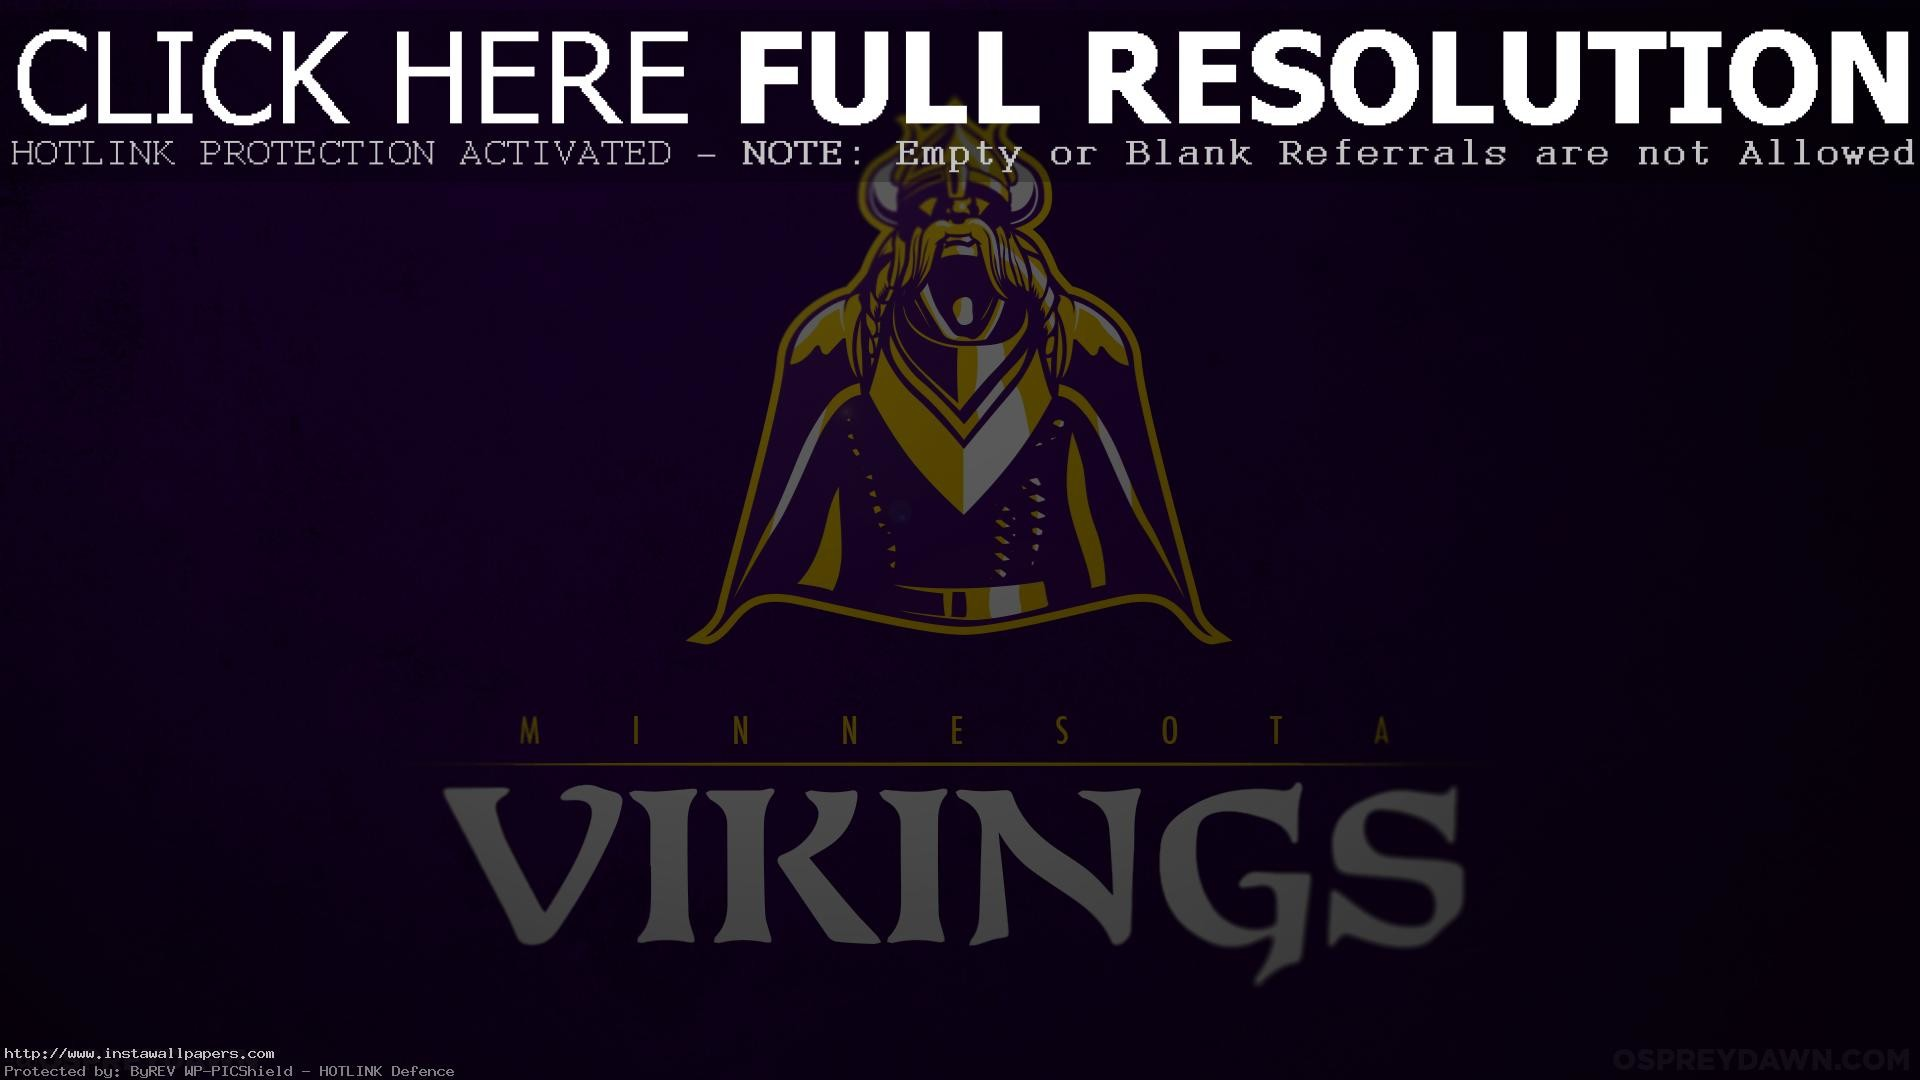 Minnesota Vikings Backgrounds 68 Images